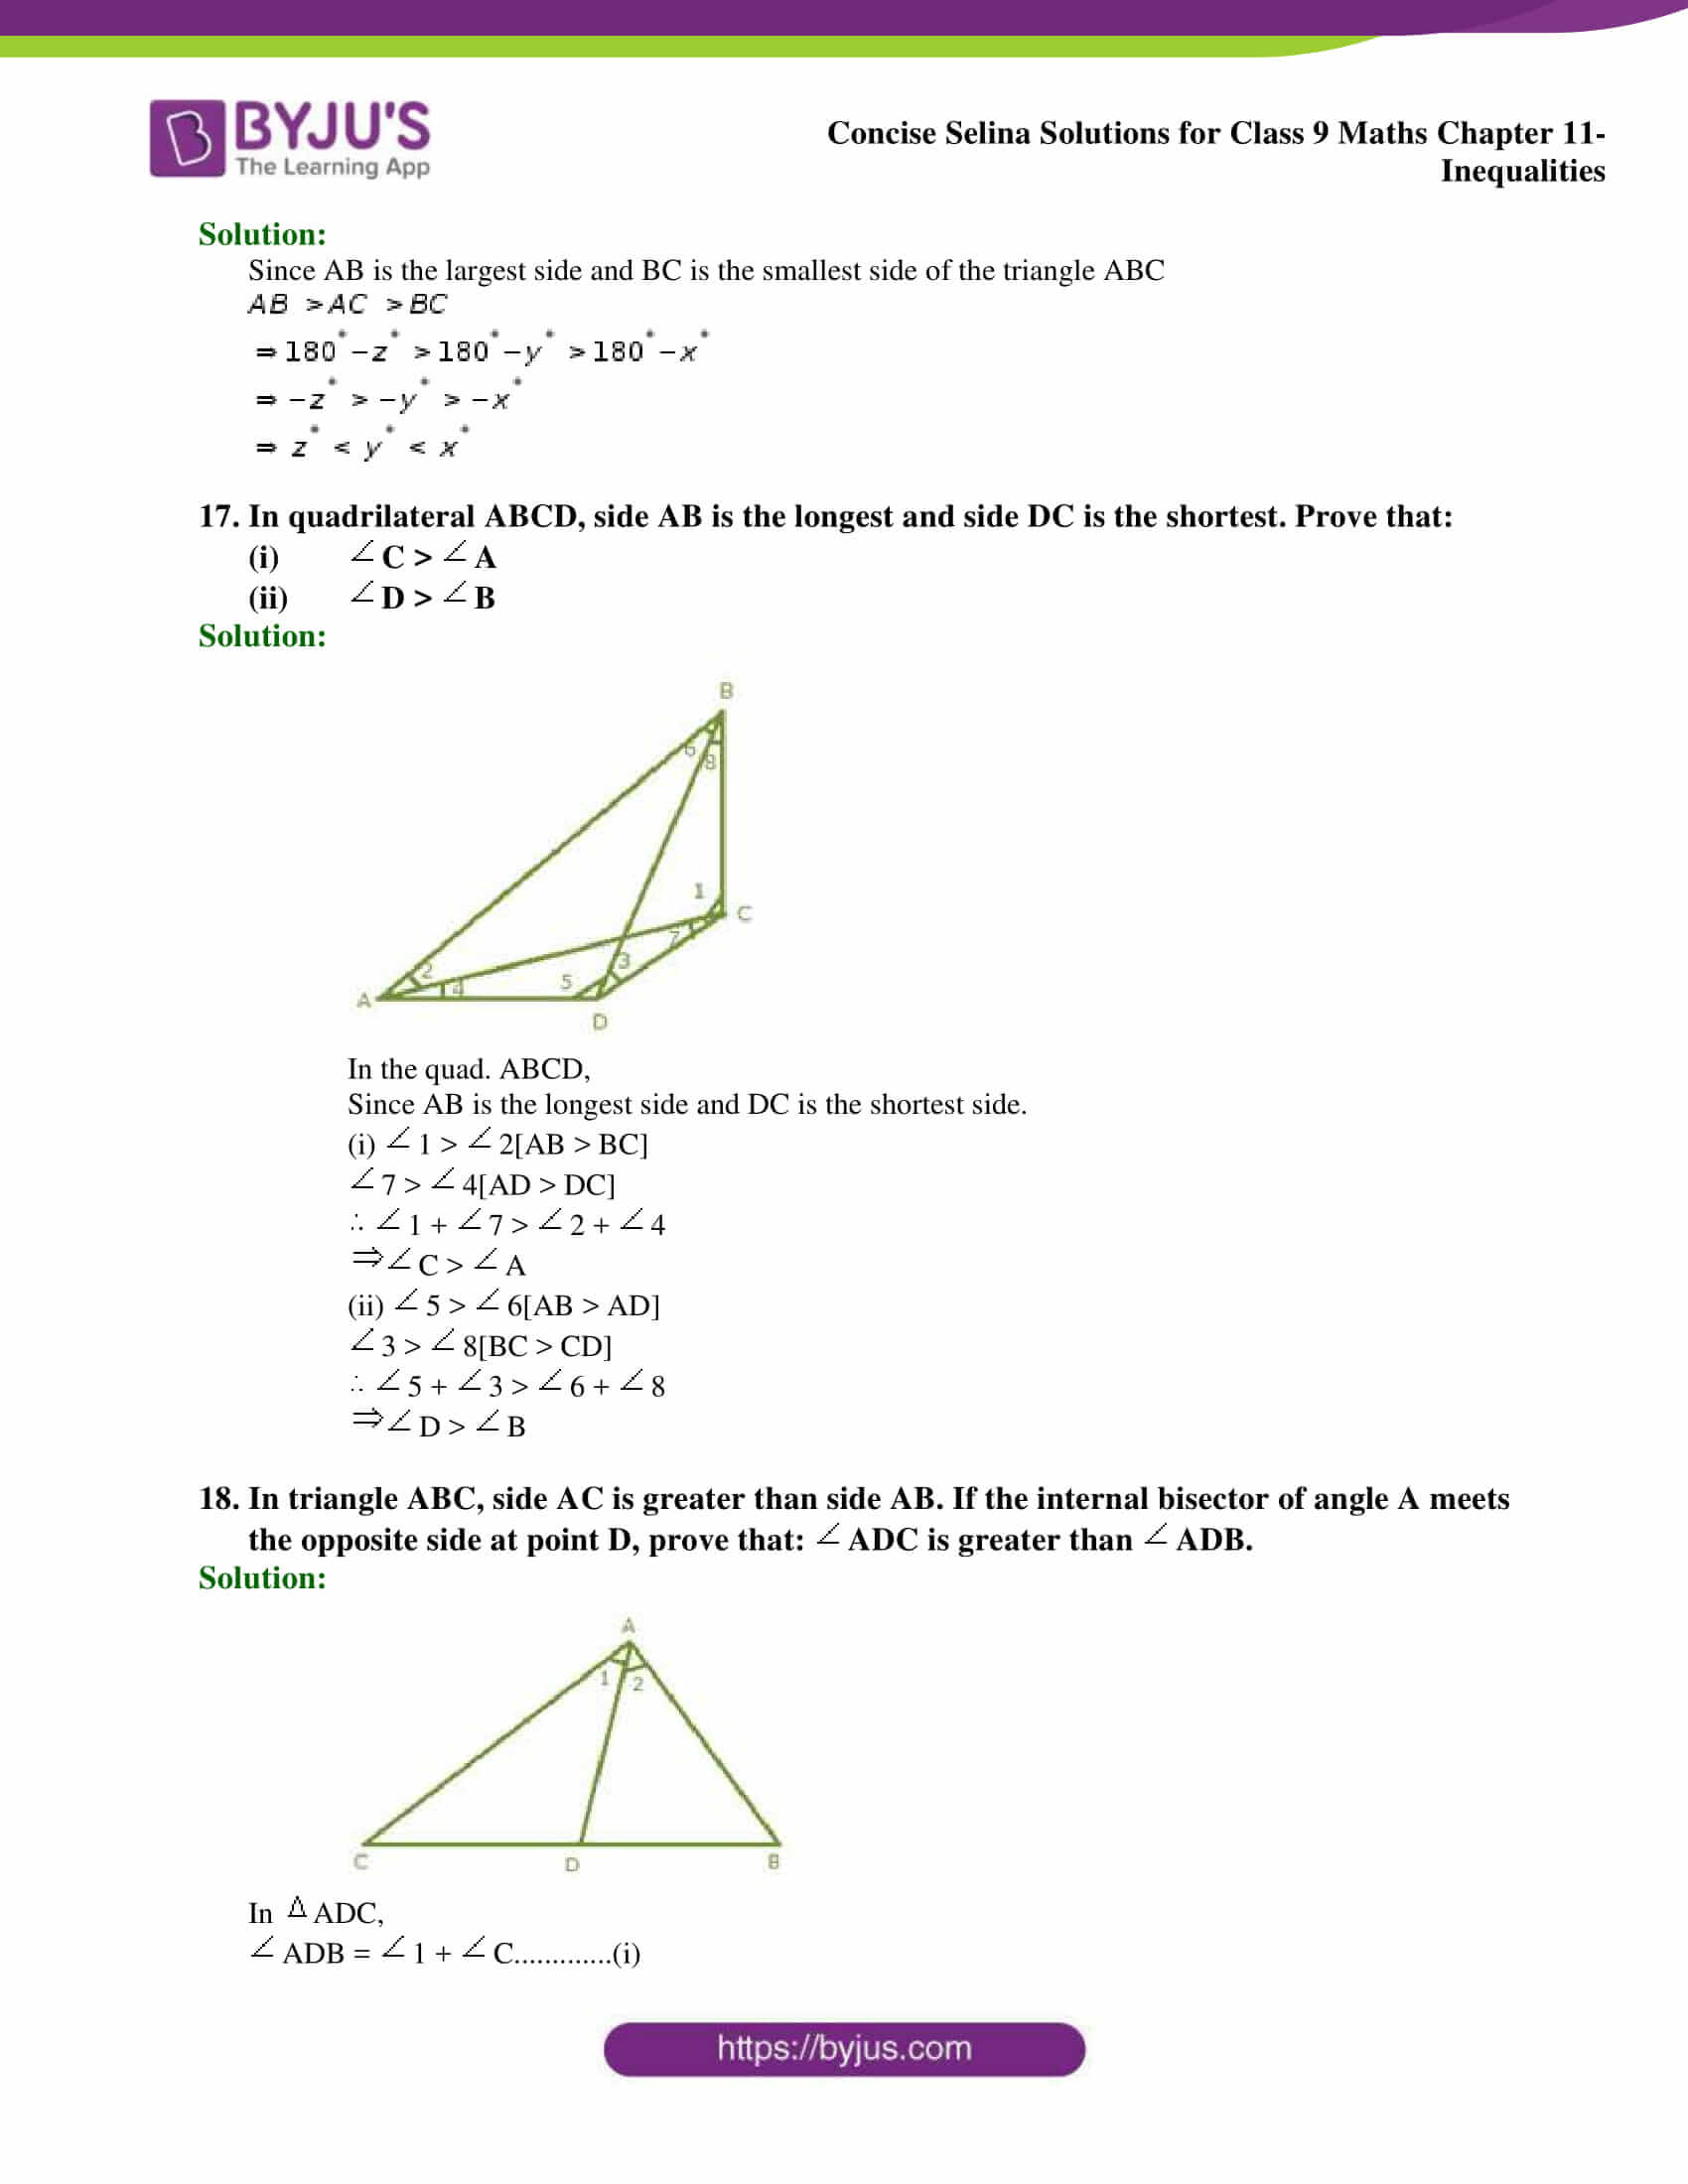 selina Solutions for Class 9 Maths Chapter 11 part 14